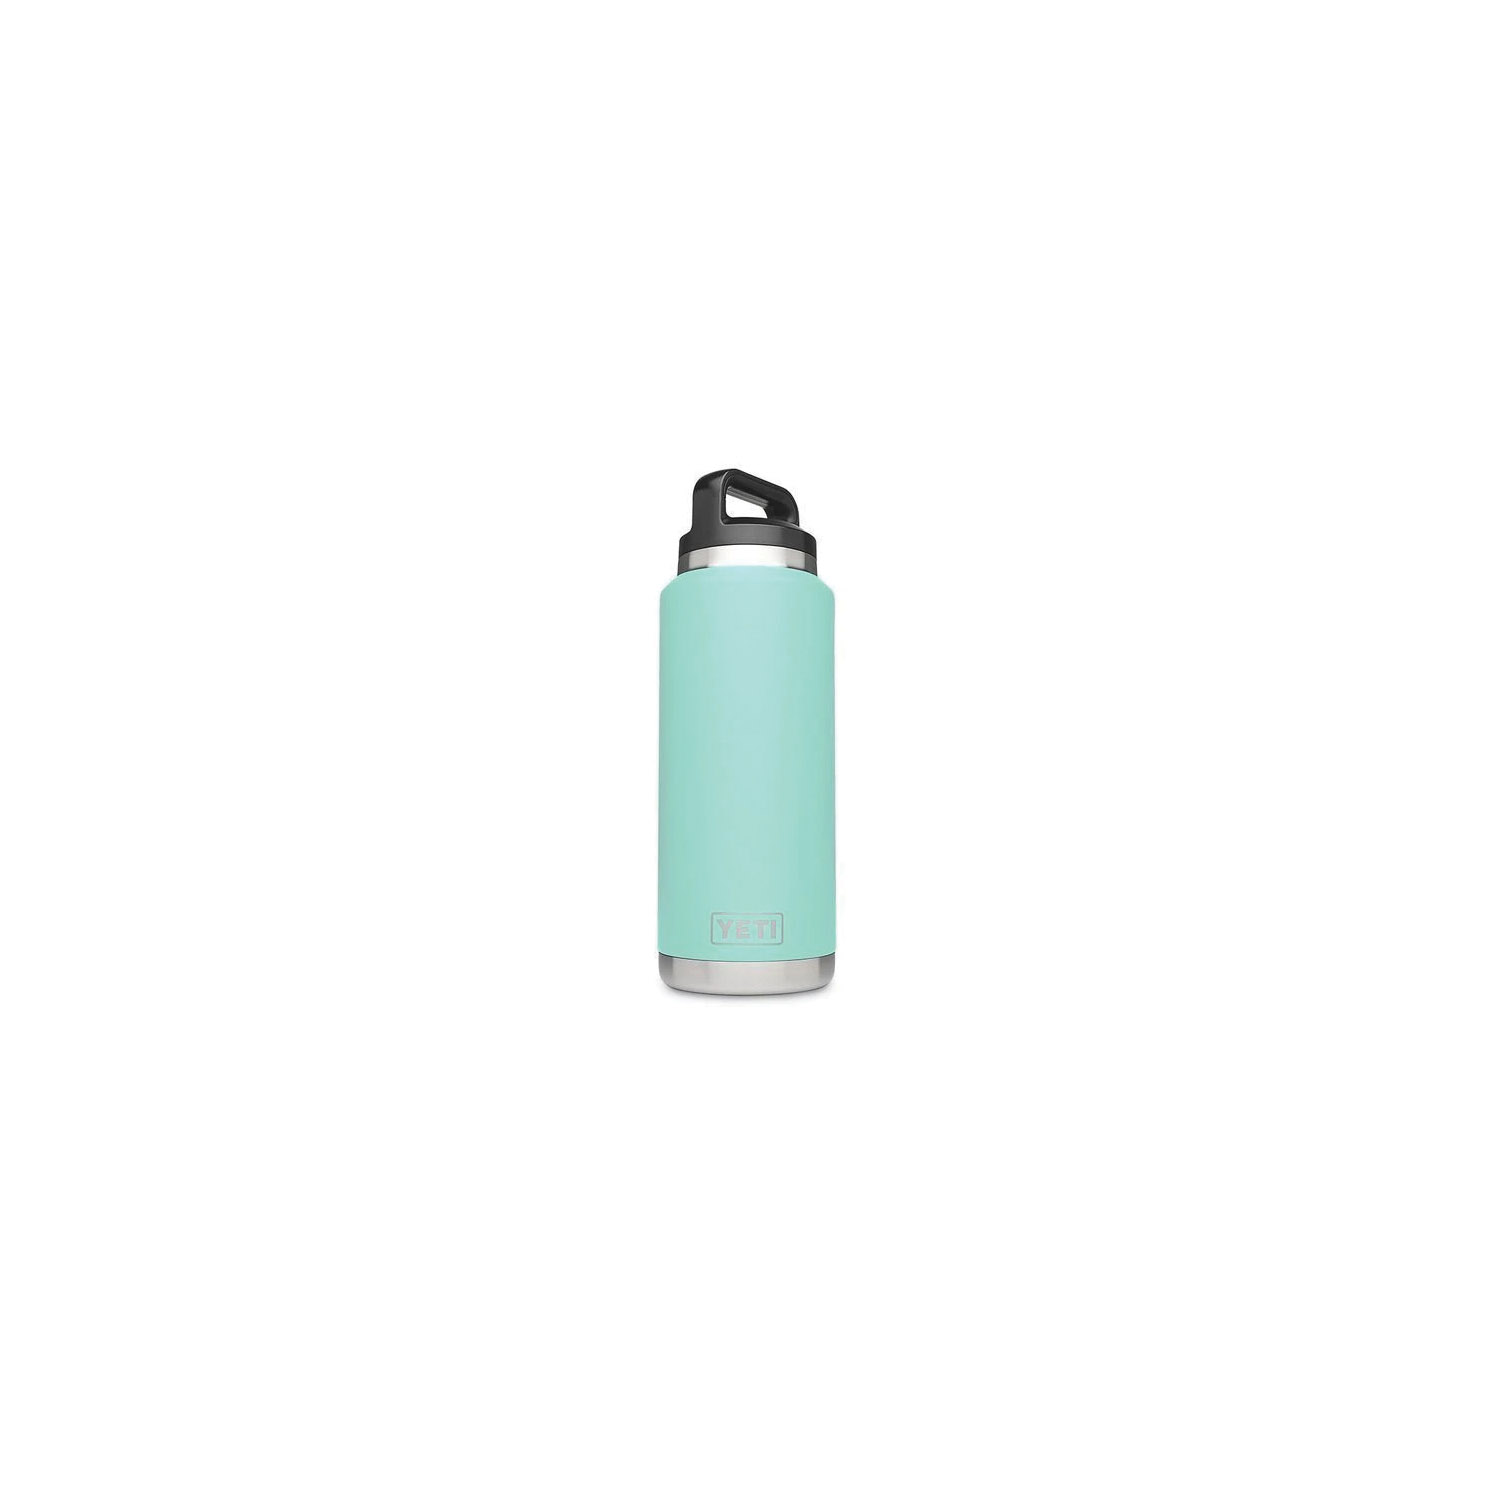 Picture of YETI Rambler 21071070003 Bottle, 36 fl-oz Capacity, Stainless Steel, Seafoam